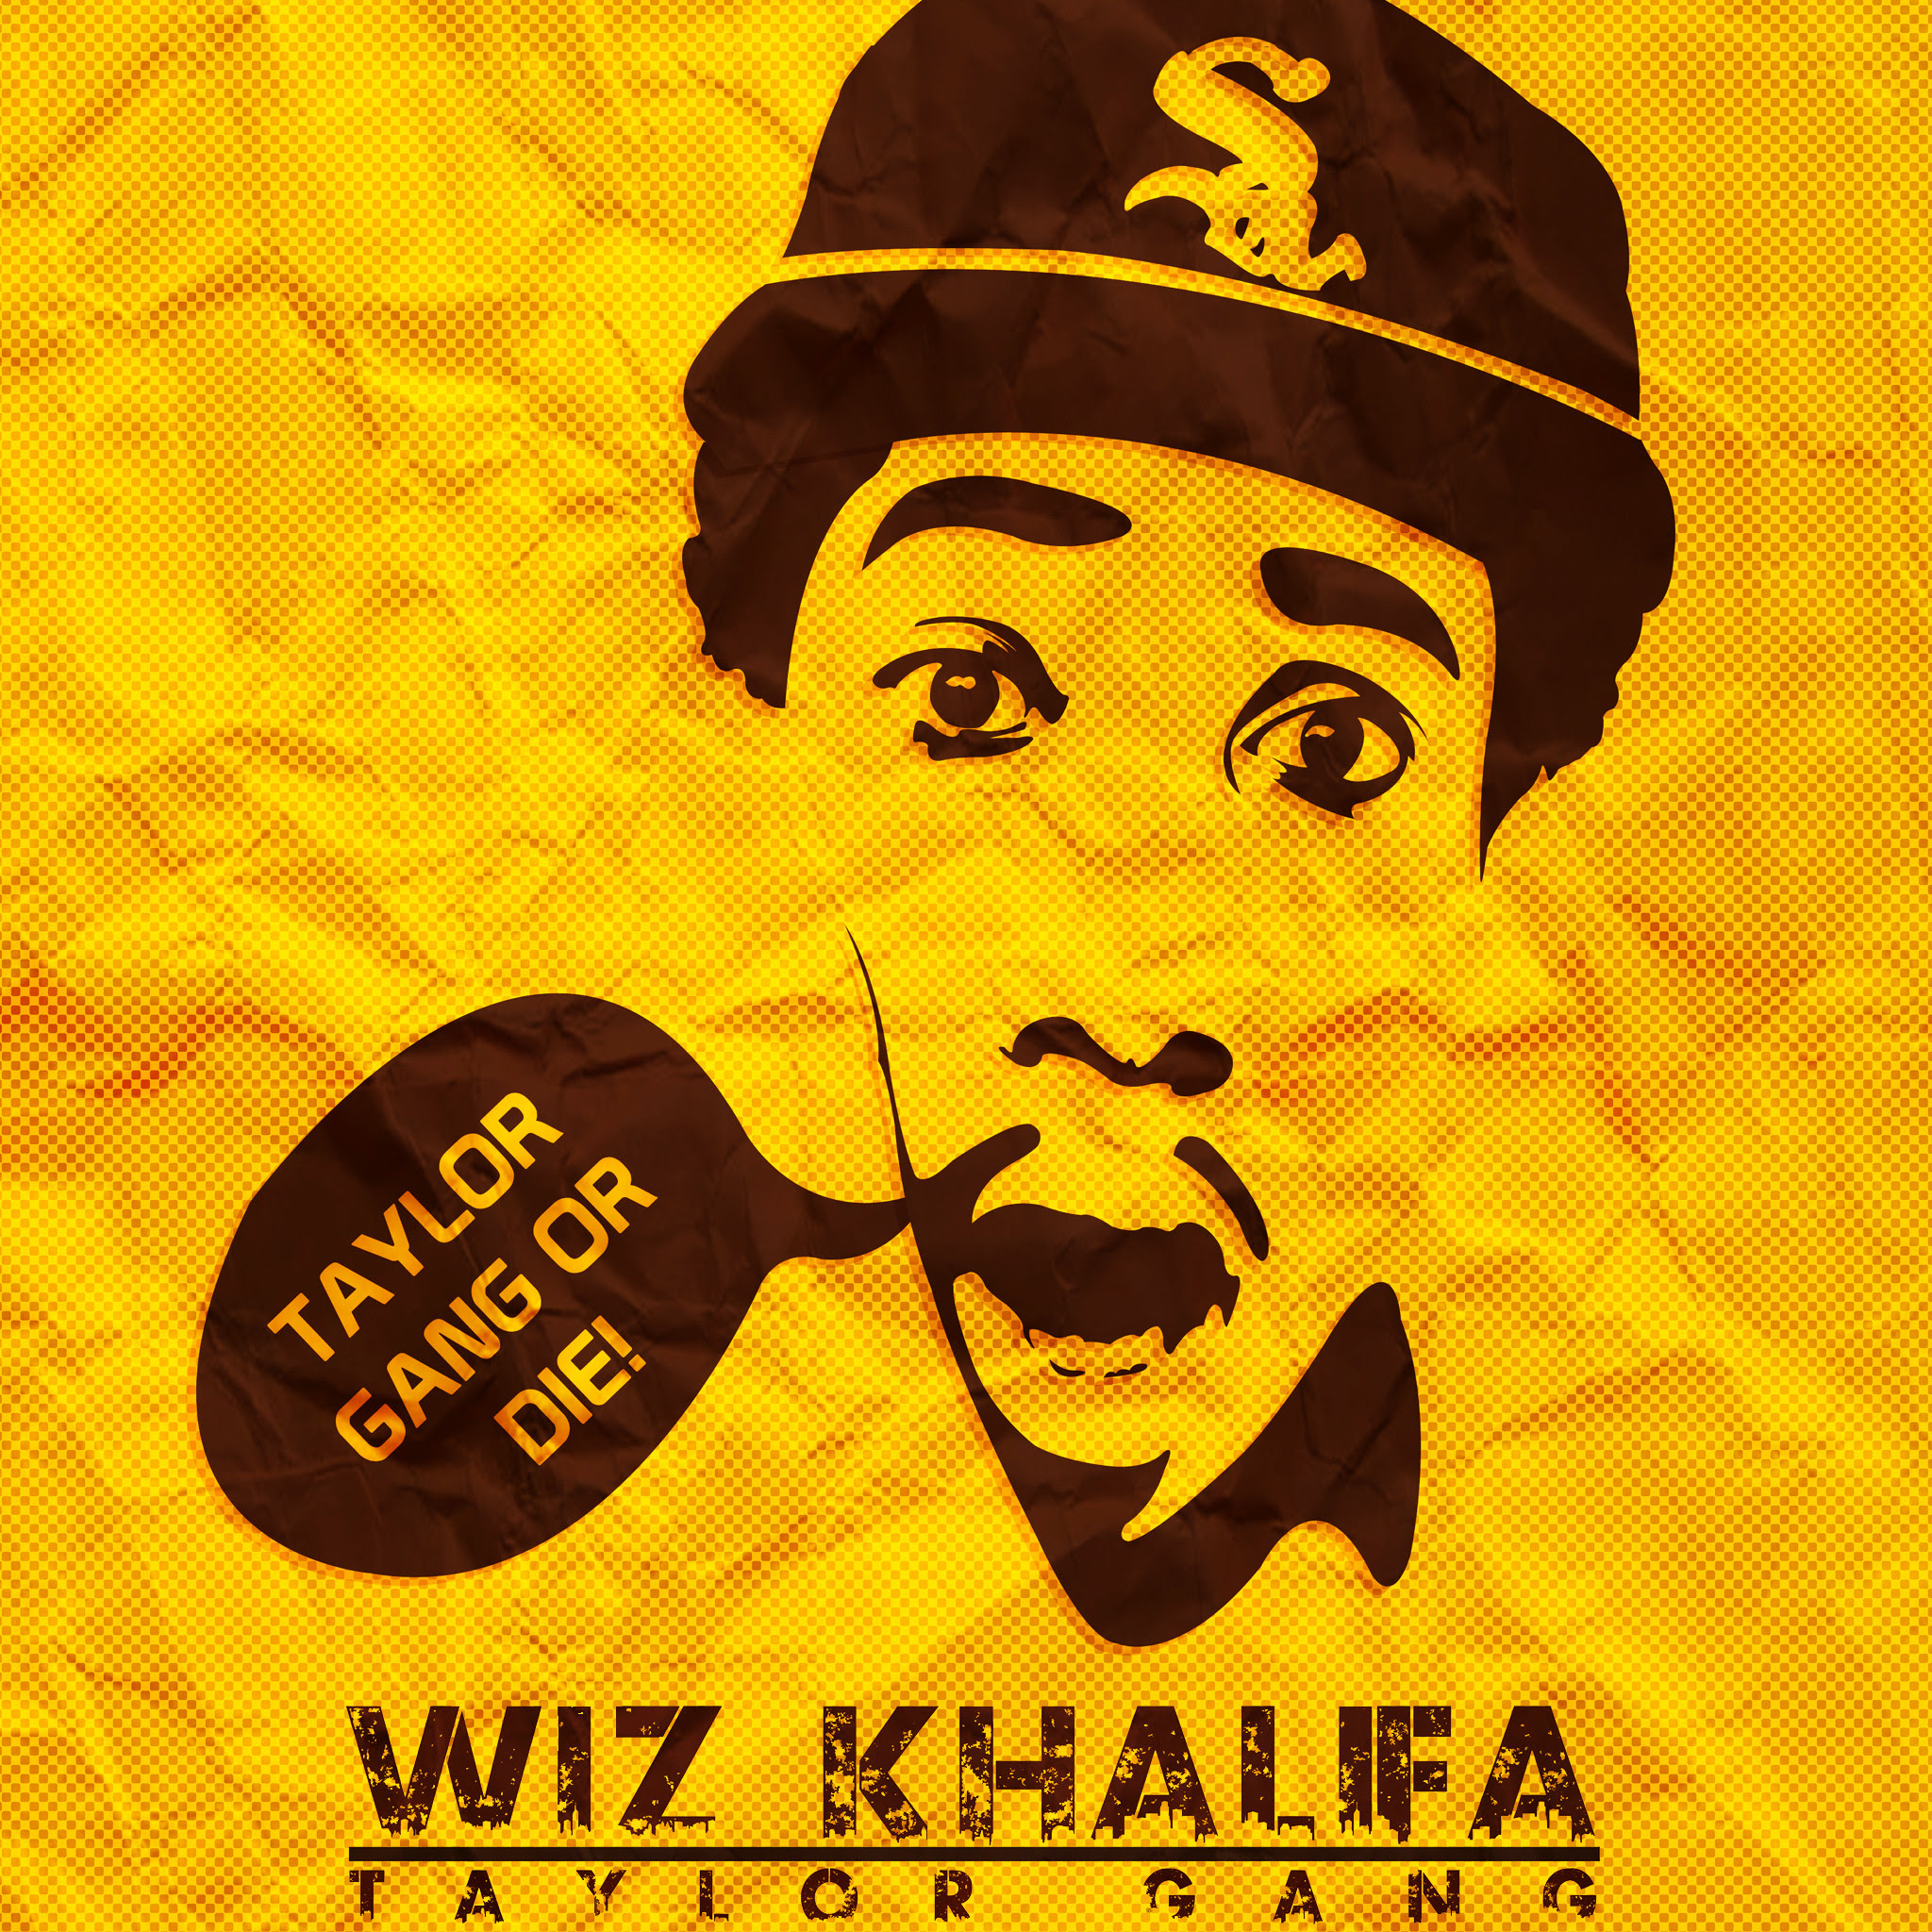 Wiz Khalifa Wallpaper iPhone 5 (60+ images)